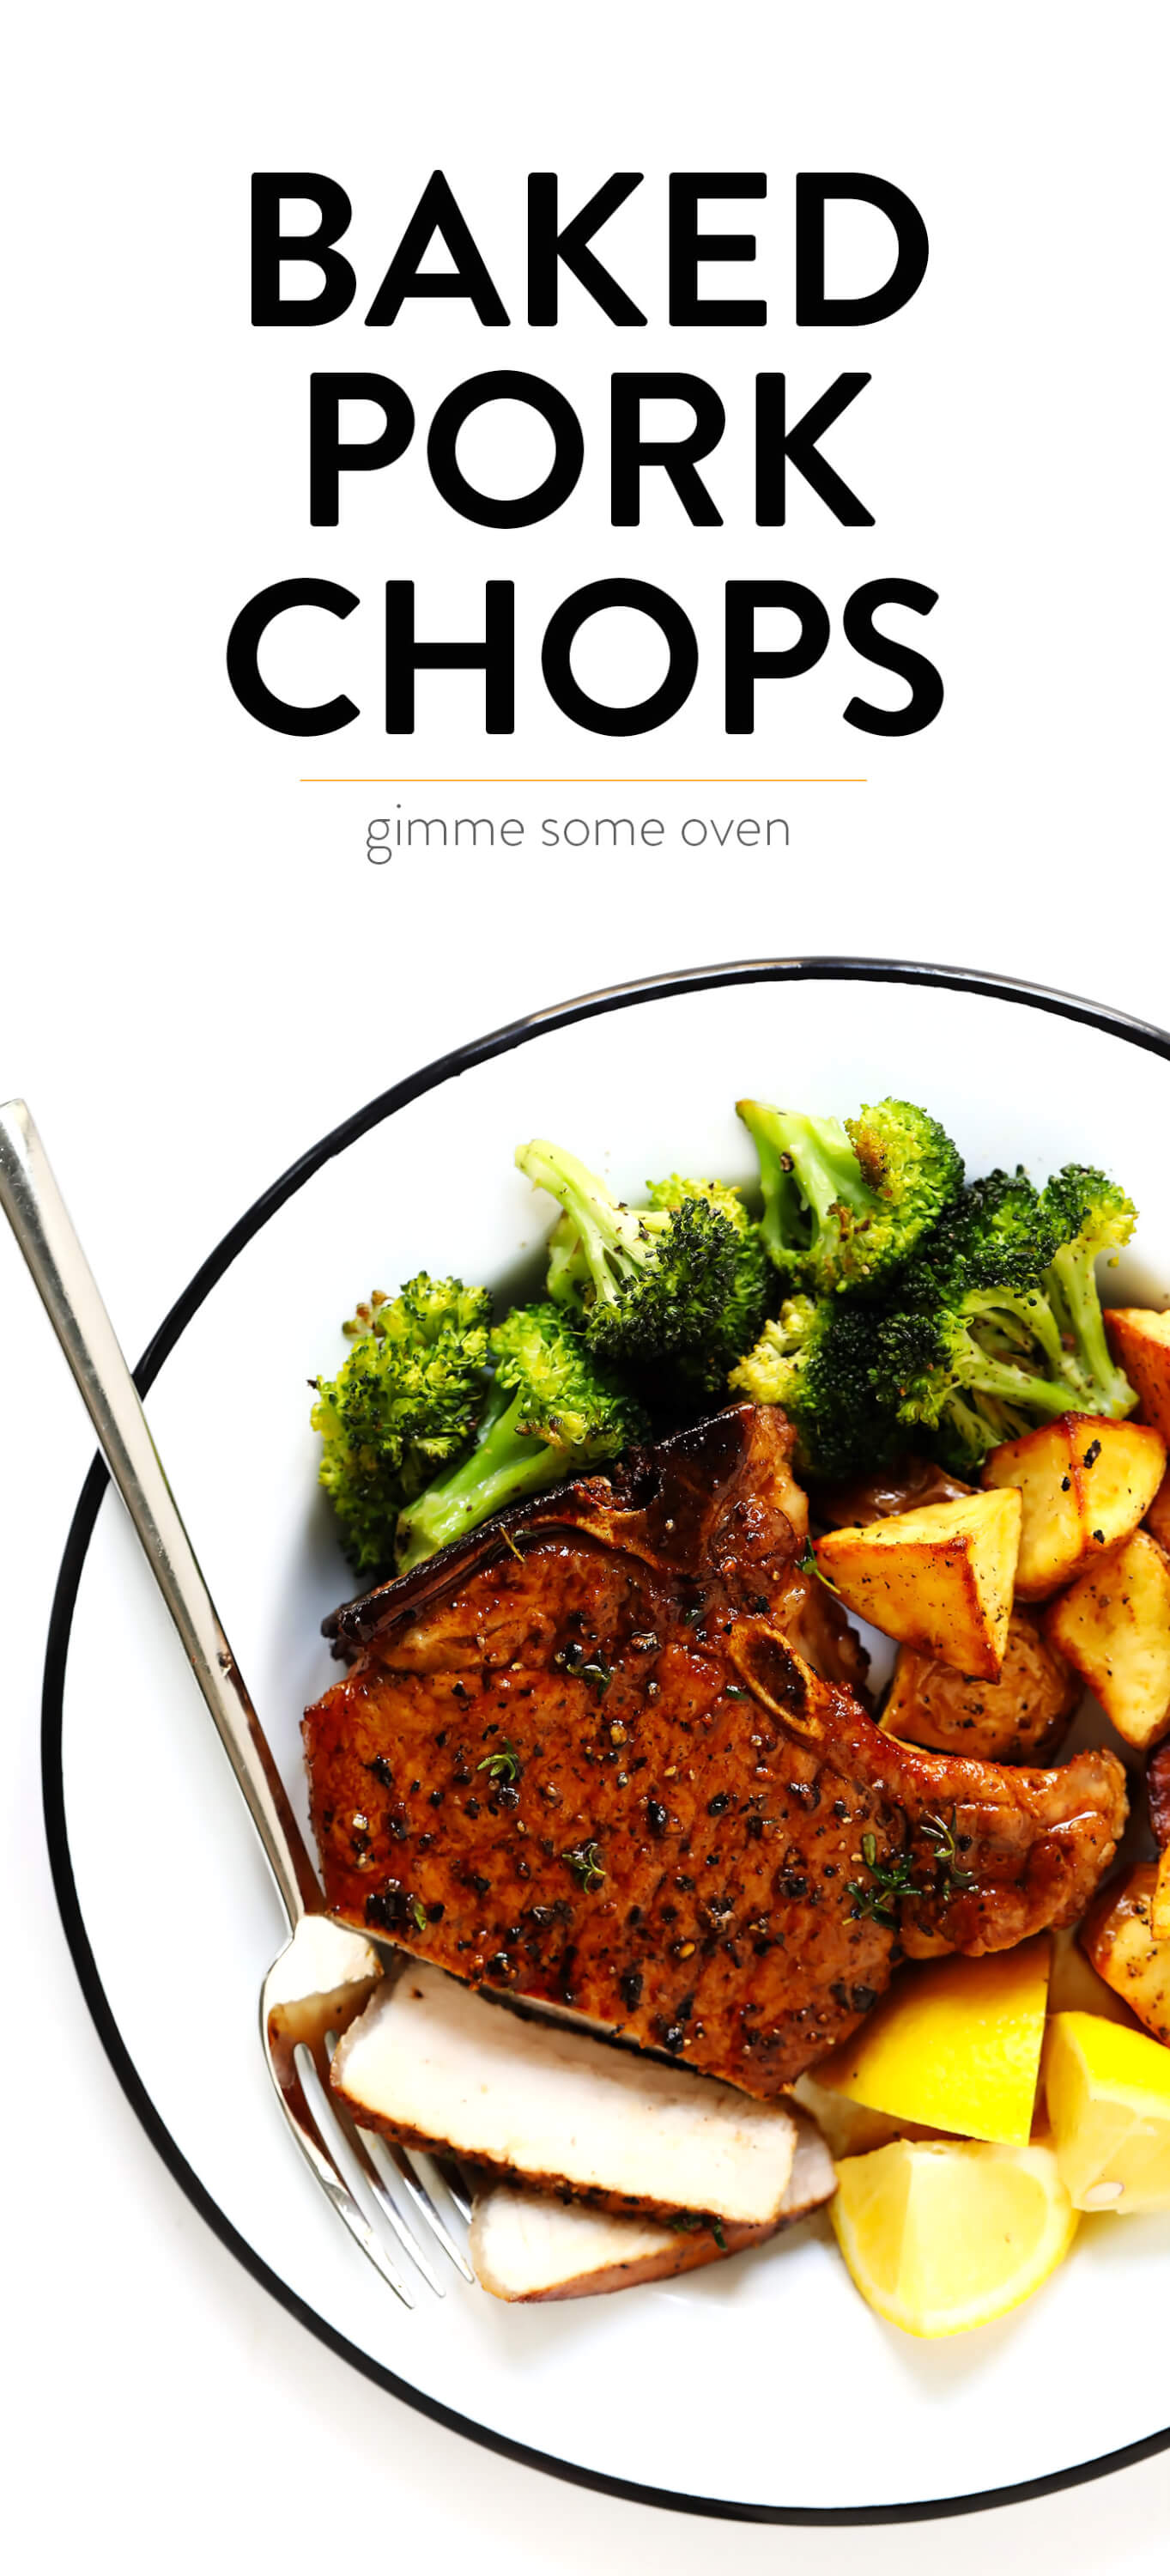 Baked Pork Chops Recipe with Lemon, Roasted Broccoli and Potatoes